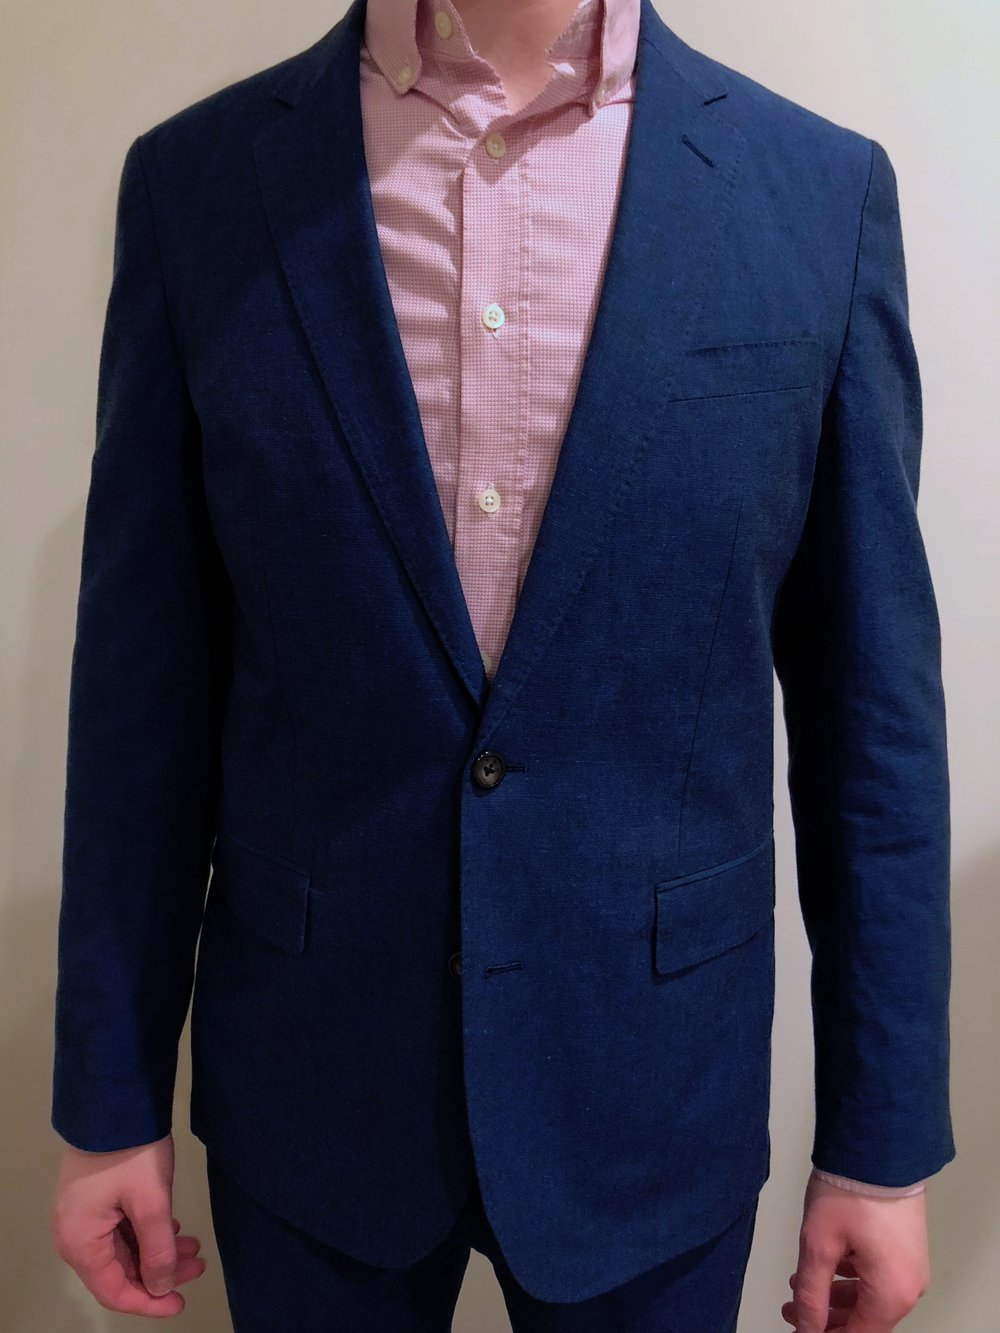 78bba2b56dd0 Overall, it's pretty standard fair for a J Crew Ludlow suit. A slightly  lowered button stance, a shorter-but-not-cropped bottom, double vents in  the back, ...